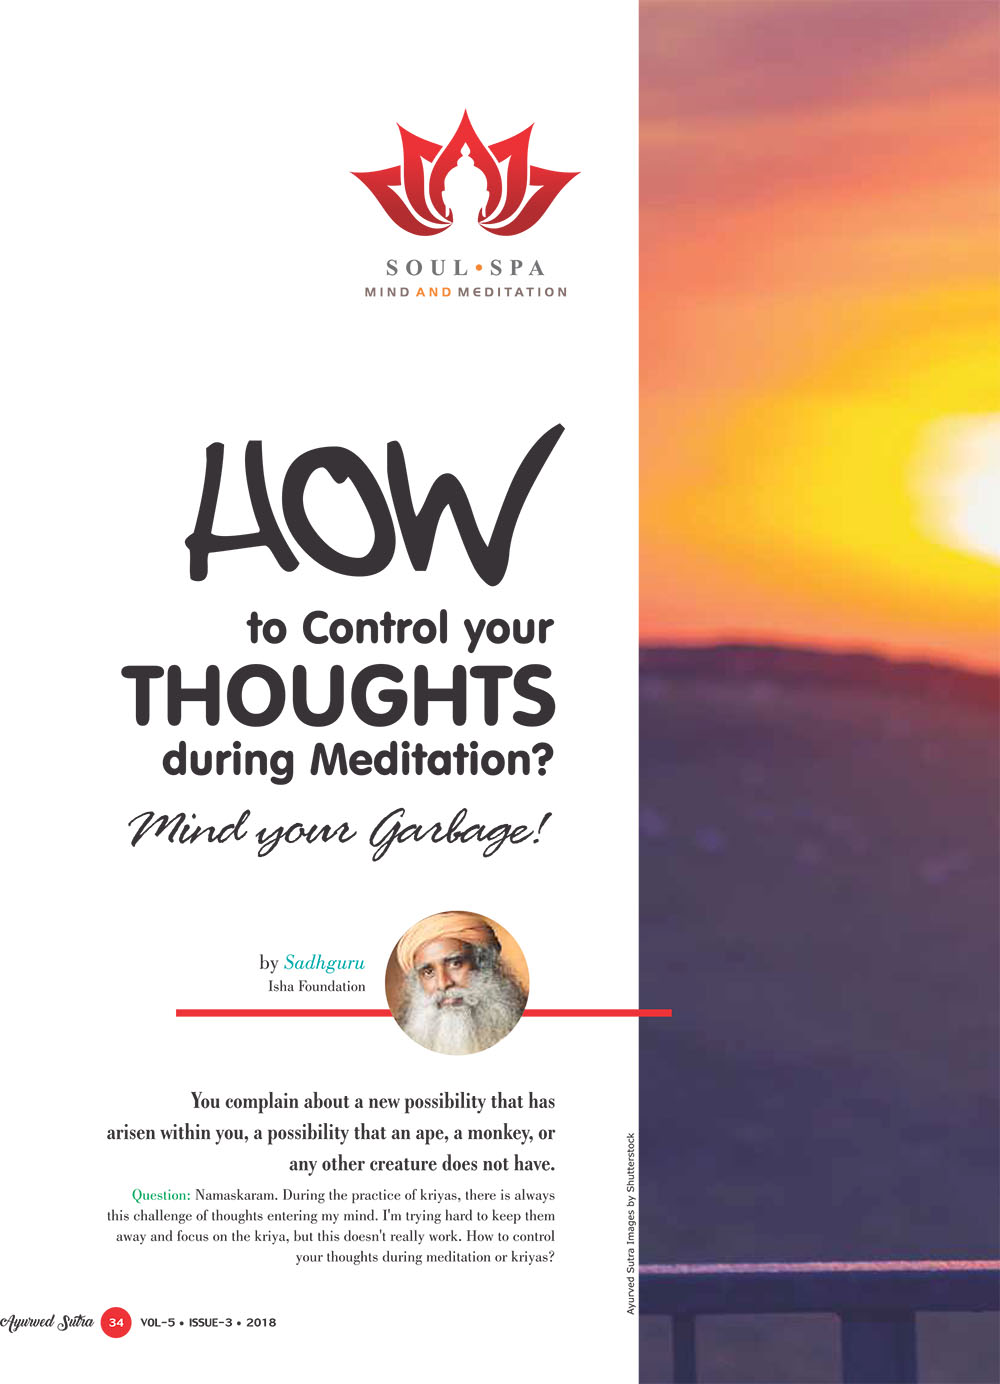 Ayurvedsutra Vol 05 issue 03 36 - How to Control your Thoughts during Meditation?